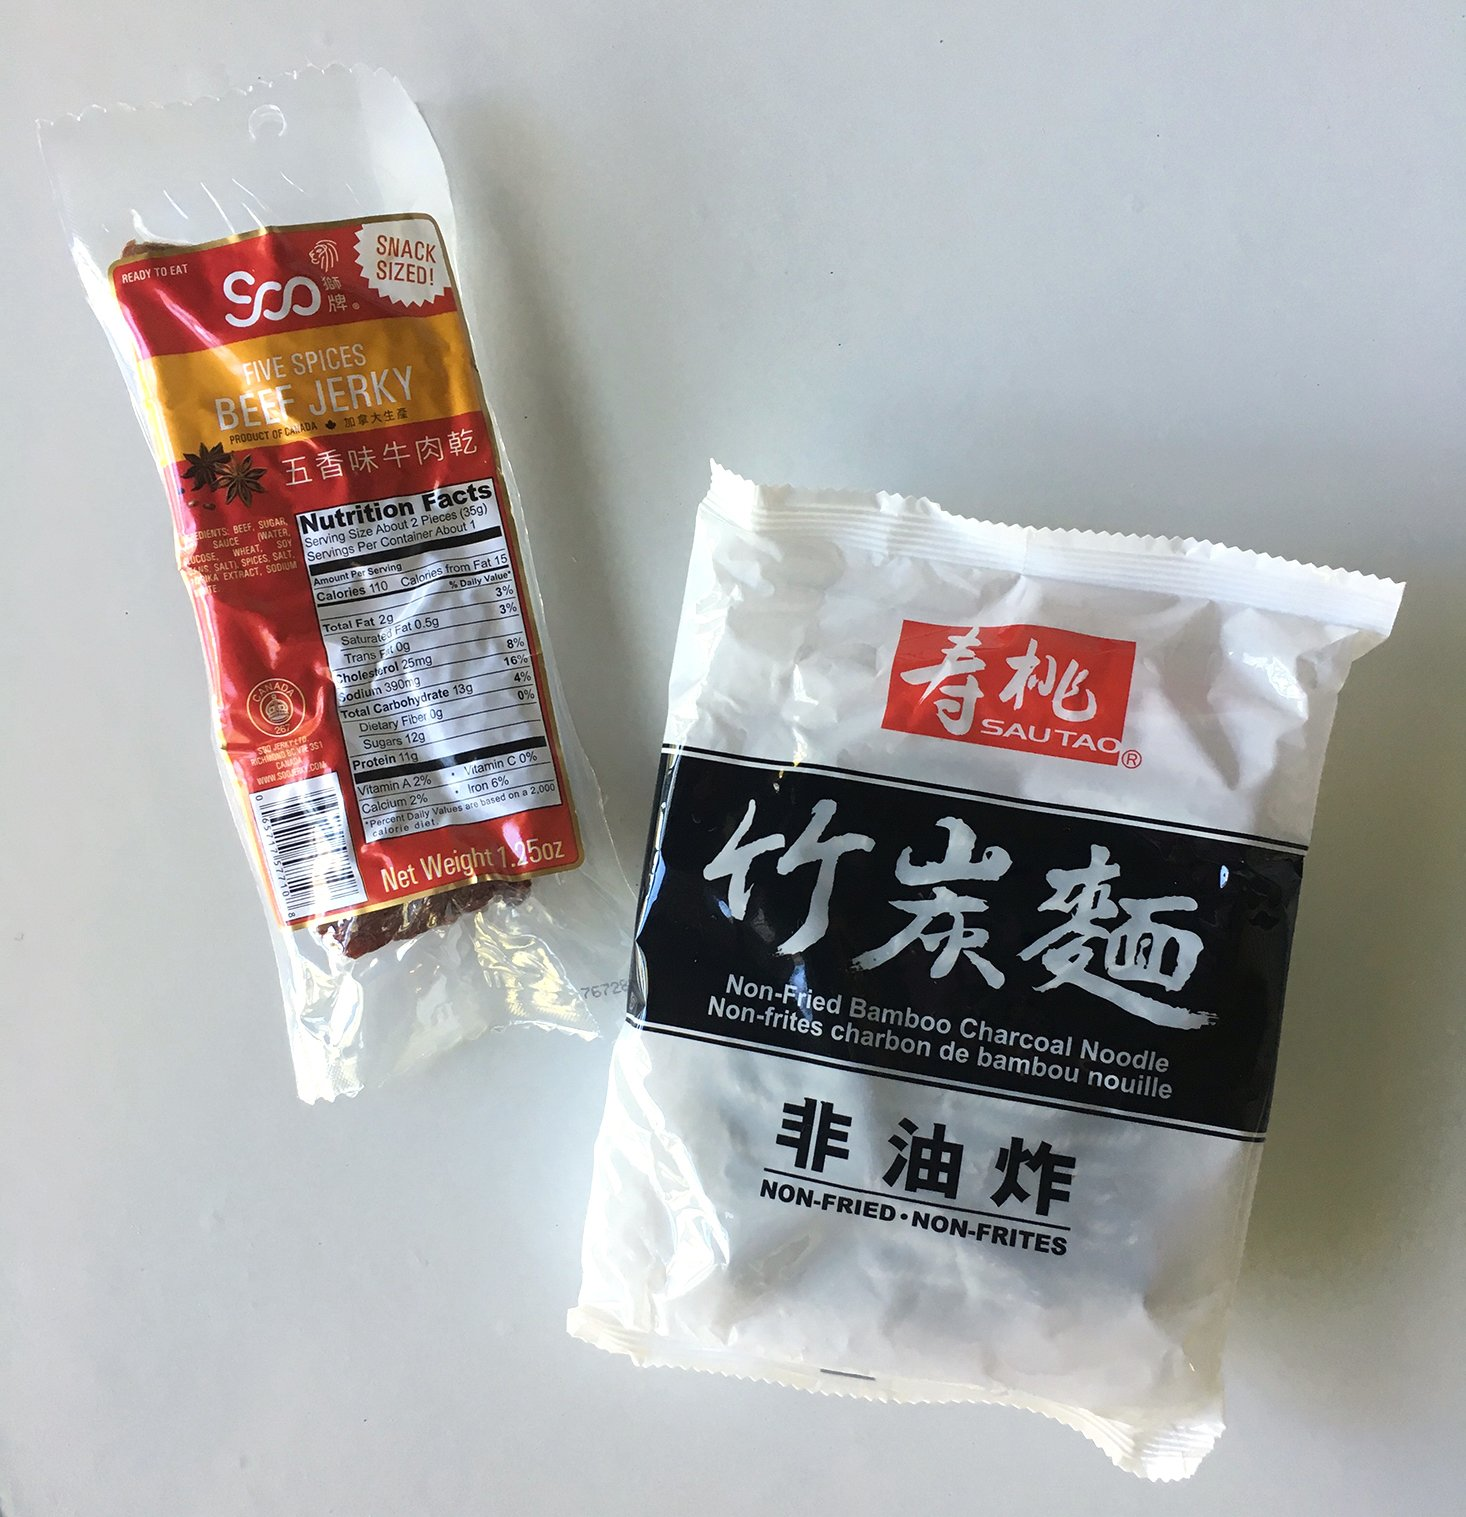 esianmall-snack-box-october-2016-beef-jerky